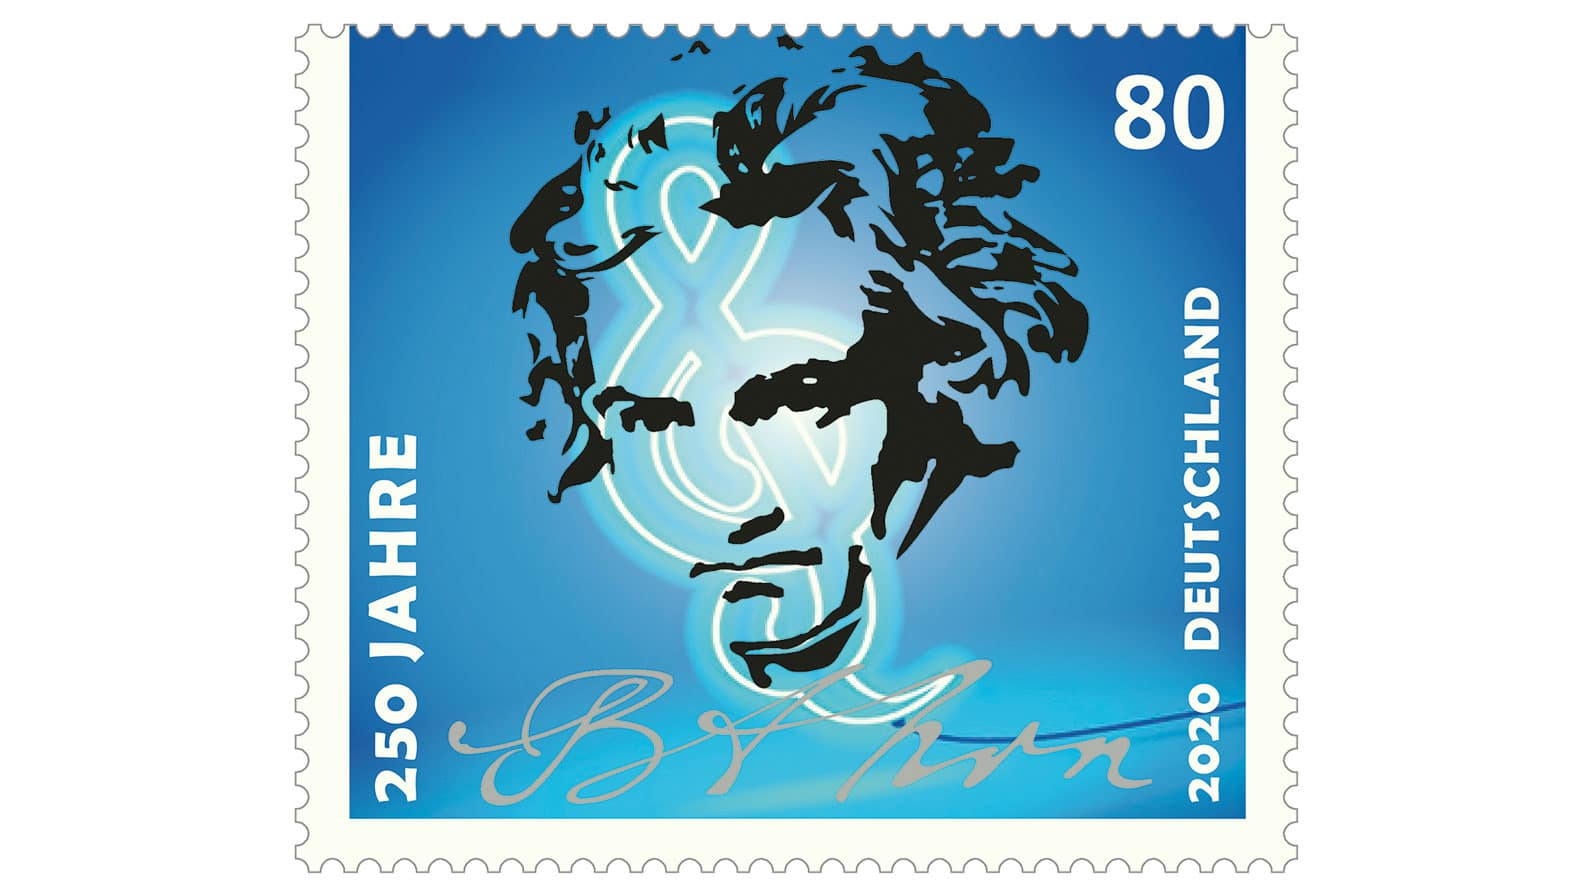 Stamp on Beethoven